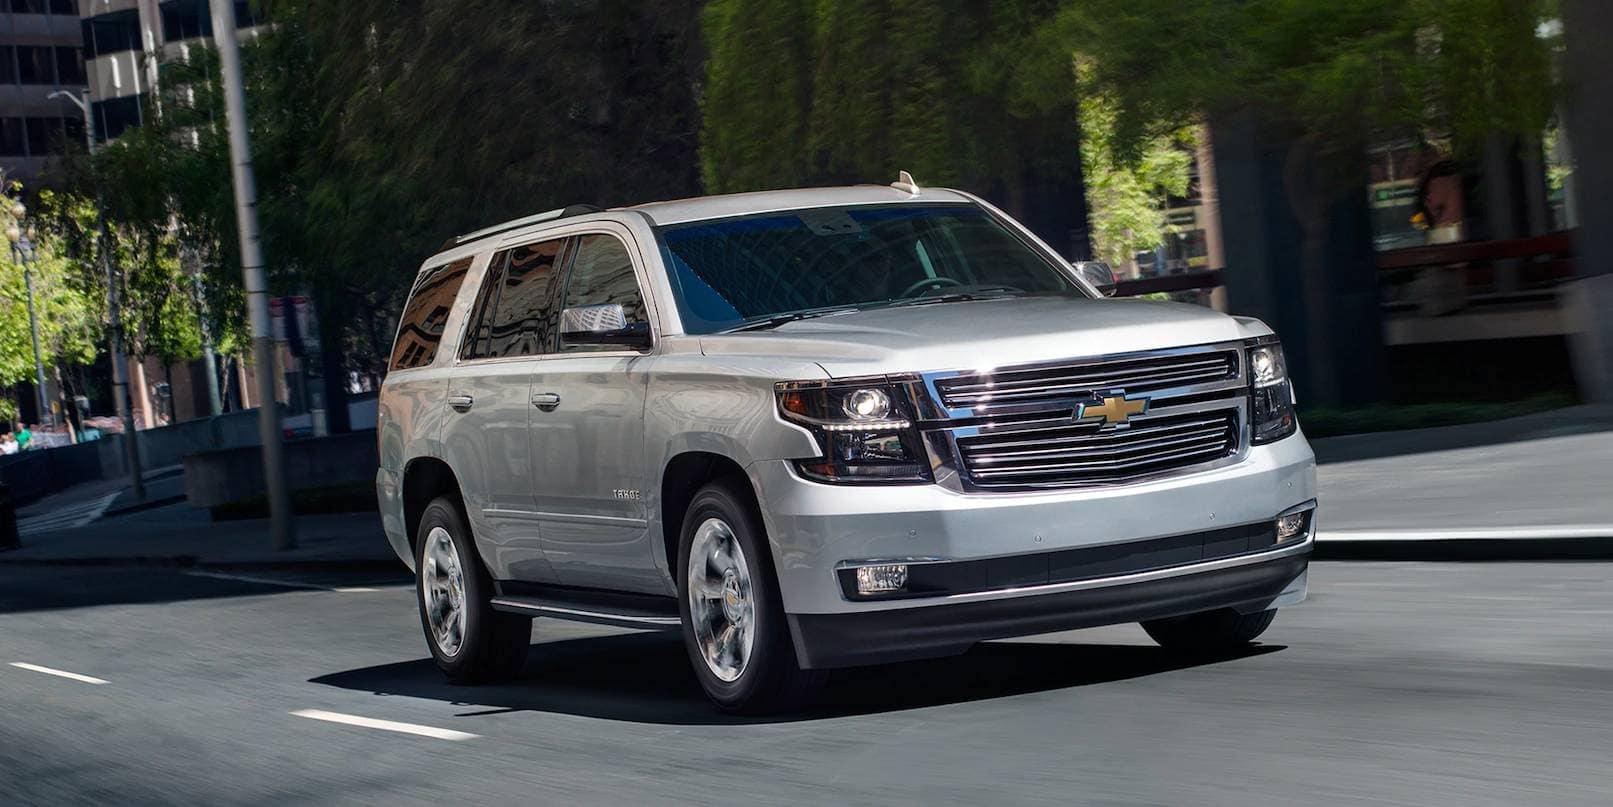 2019 Chevrolet Tahoe Exterior Driving Down Street